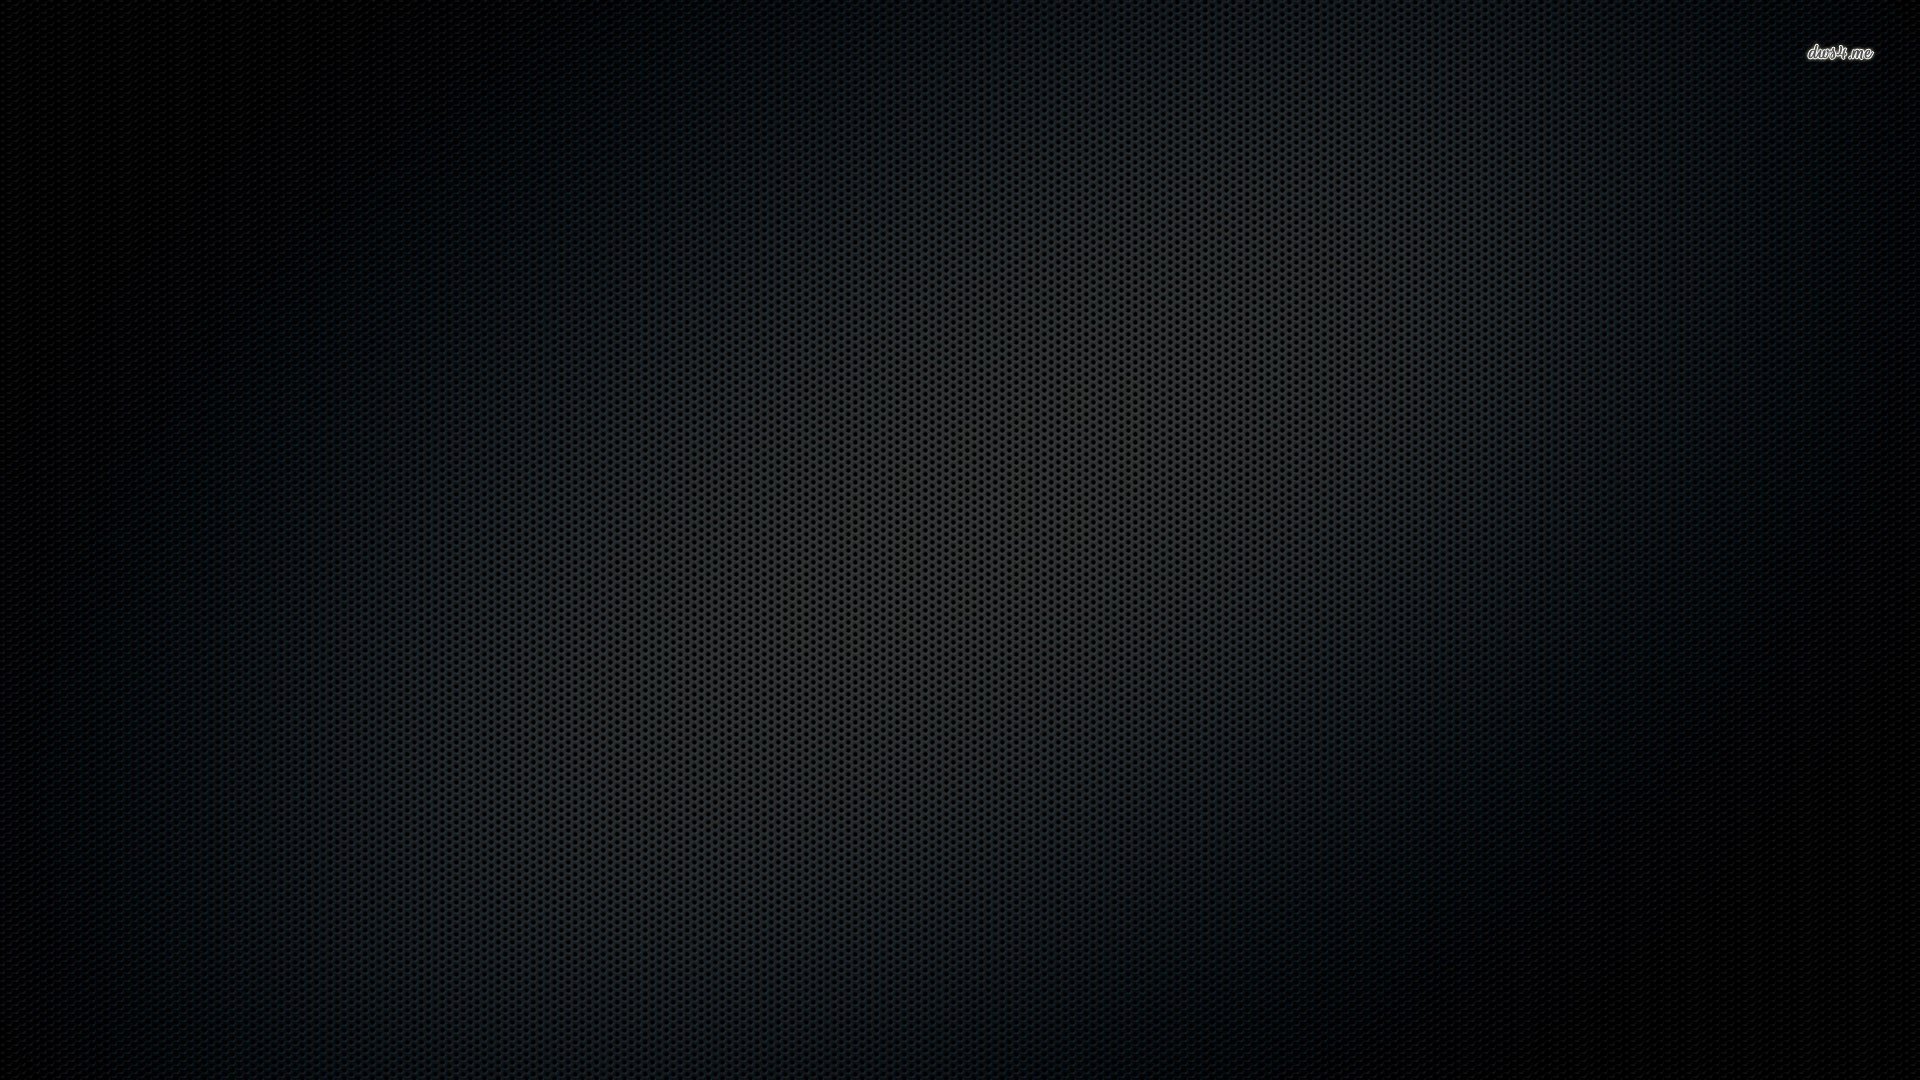 black texture wallpapers 3856 - photo #14